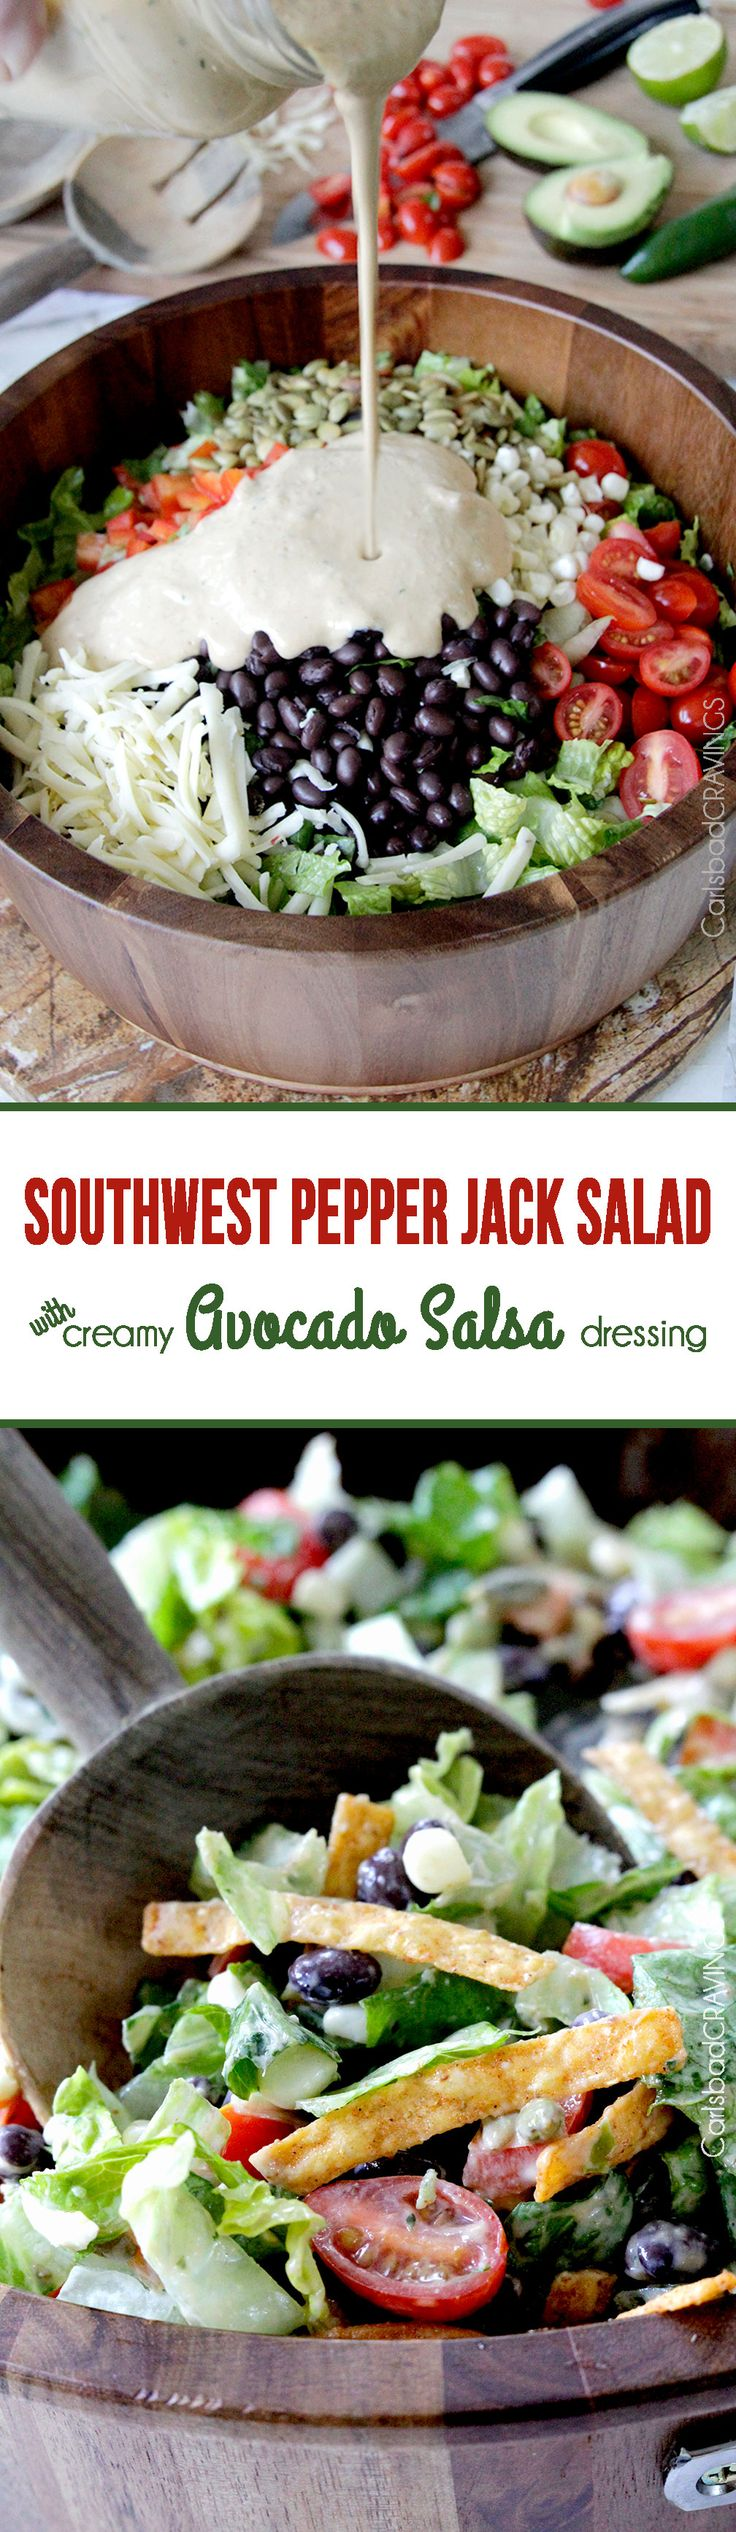 Southwest Pepper Jack Salad with Creamy Avocado Salsa Dressing will have you actually CRAVING salad!